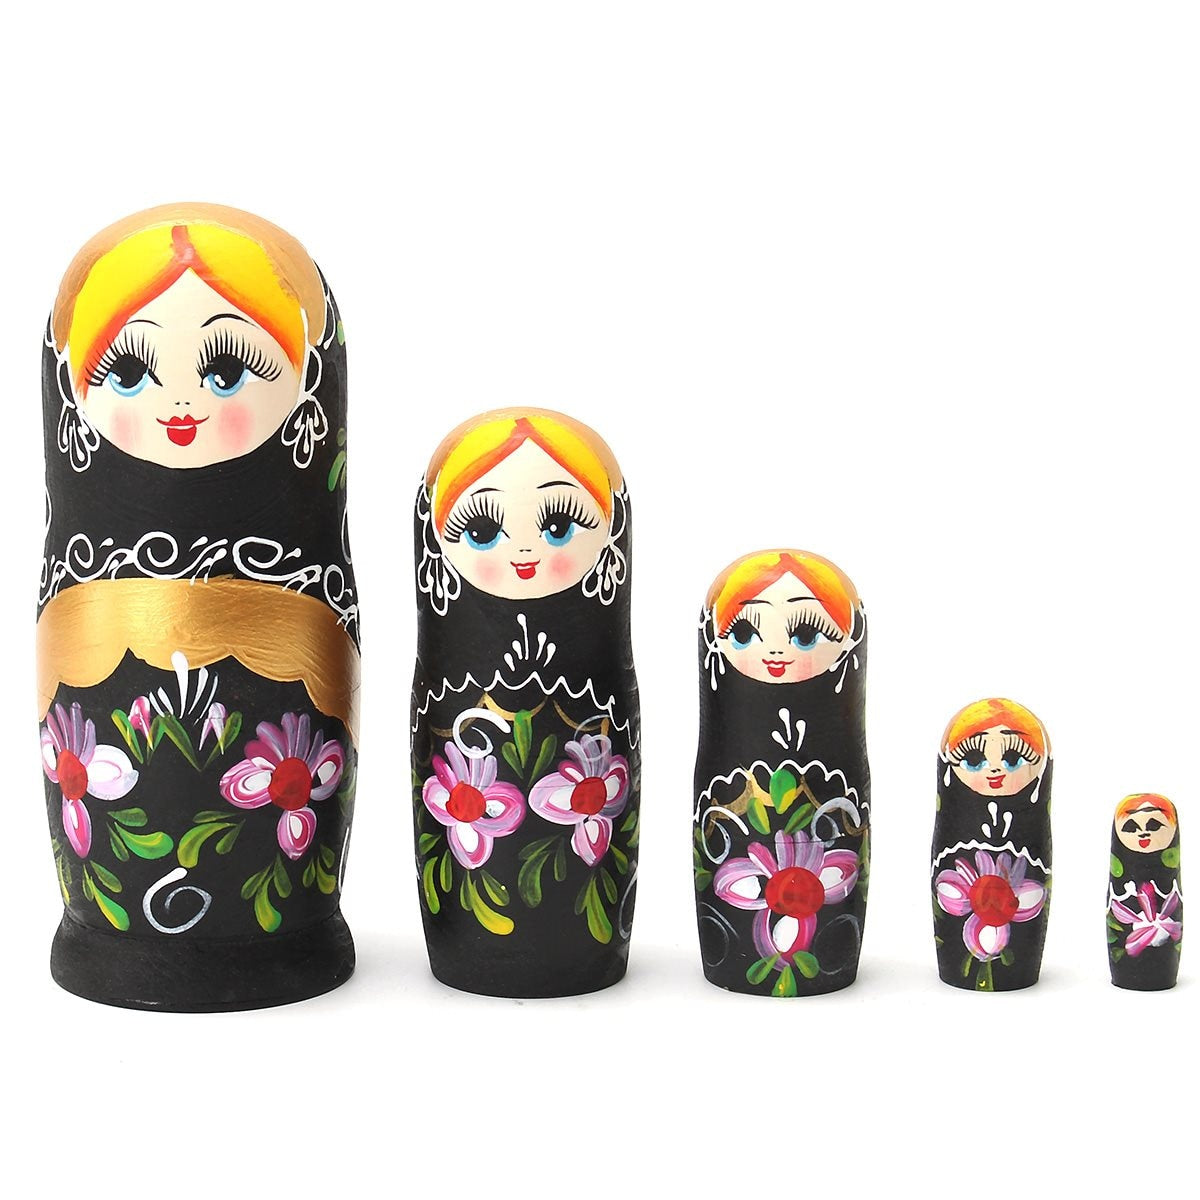 Wooden Black Matryoshka Nesting Dolls 5 Pieces